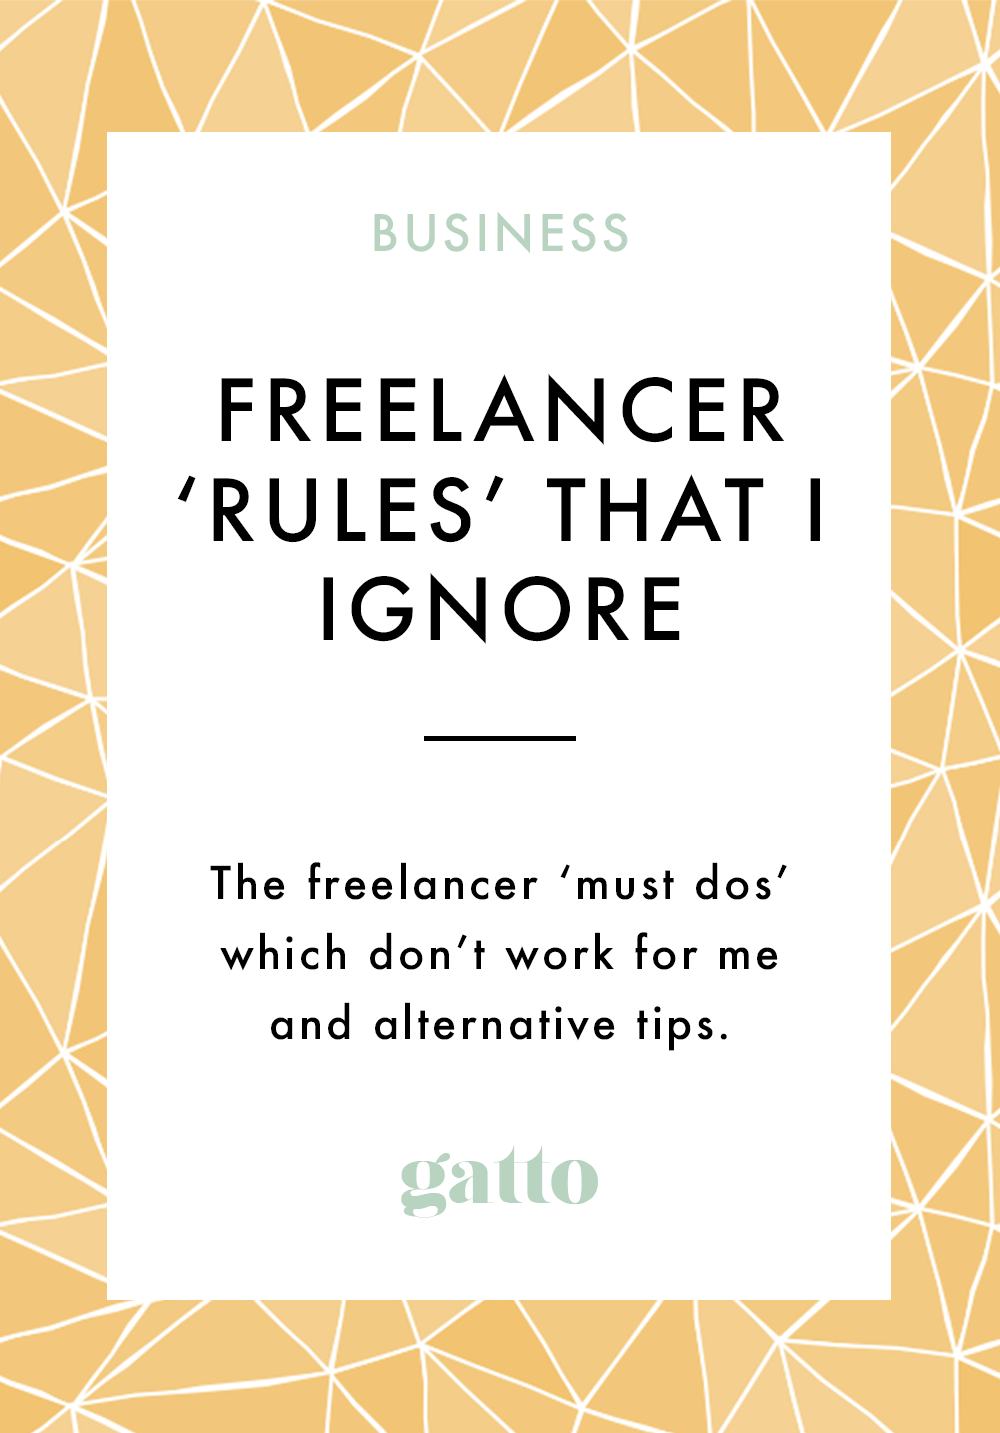 Freelancer-Rules-Ignore-Pinterest.png